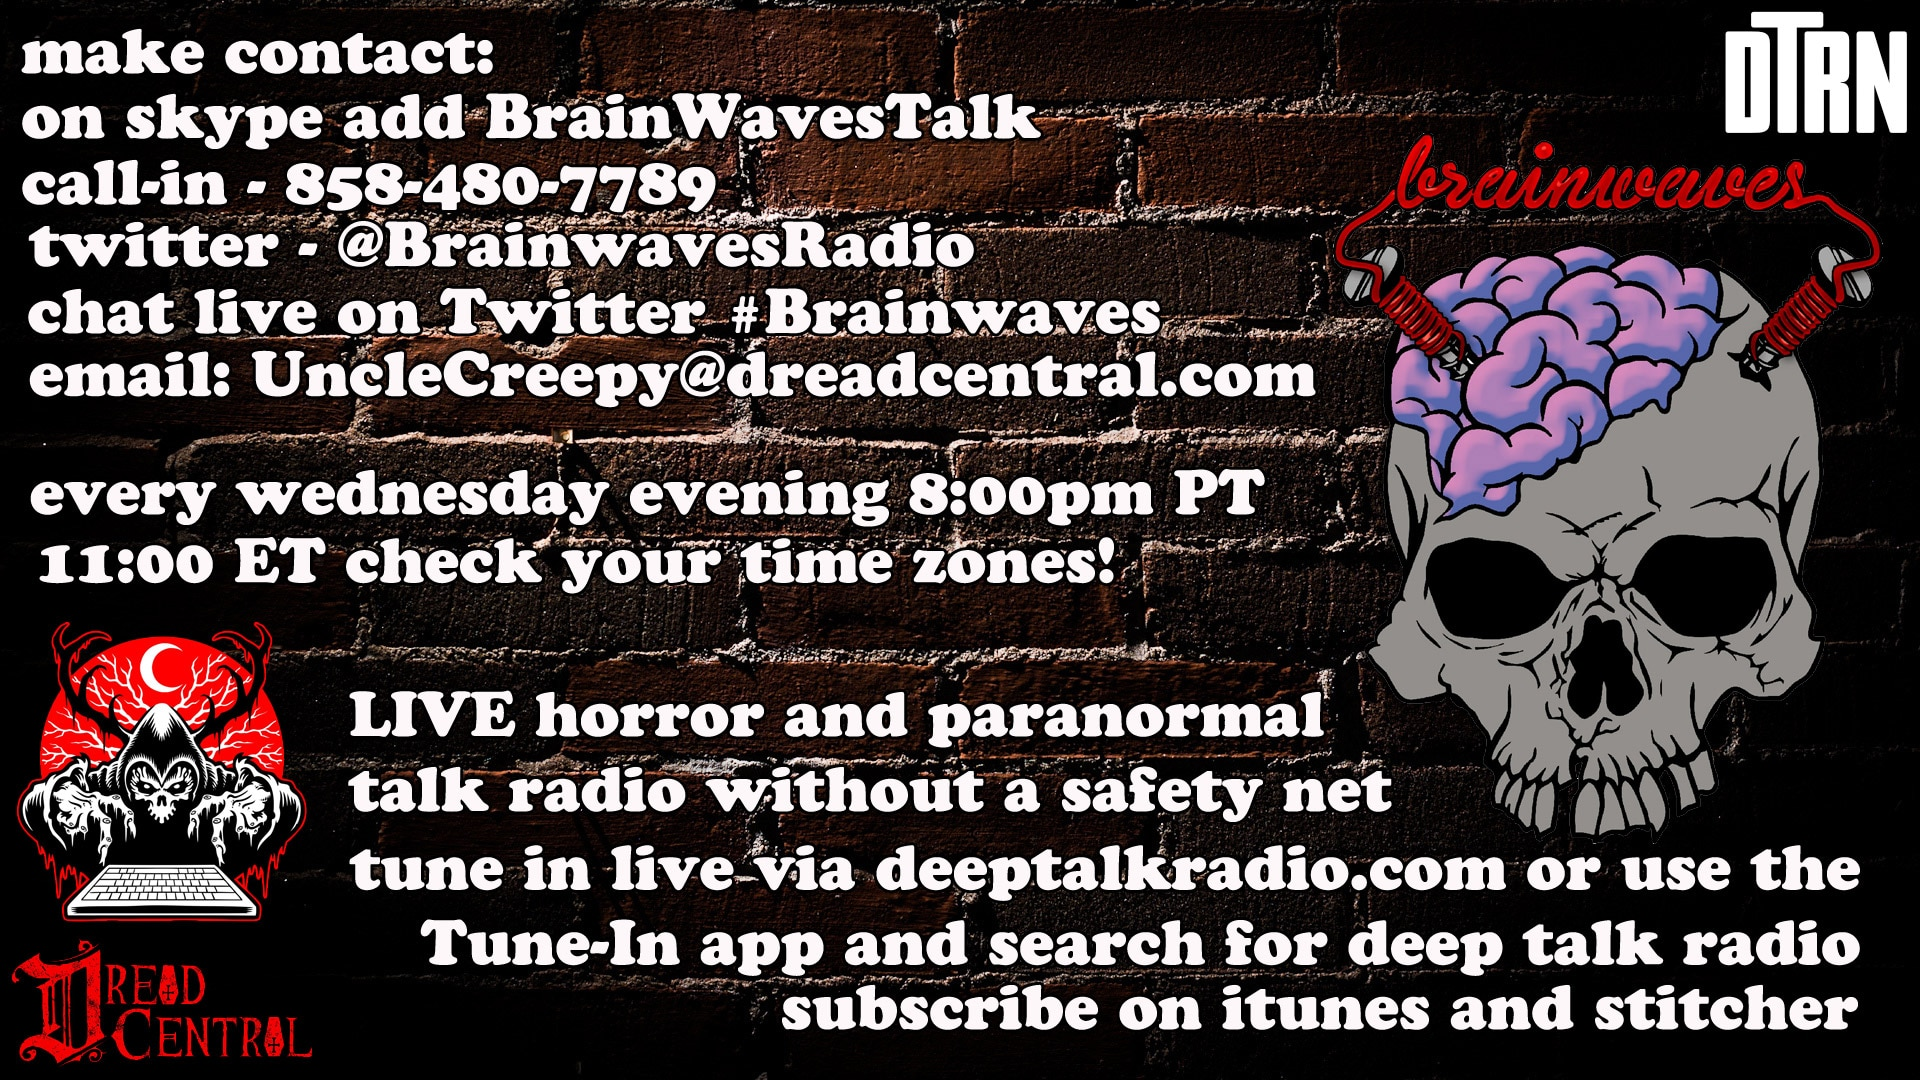 brainwaves updated contact - #Brainwaves Episode 62: Director Rodney Ascher Talks Shadow People and The Nightmare LISTEN NOW!